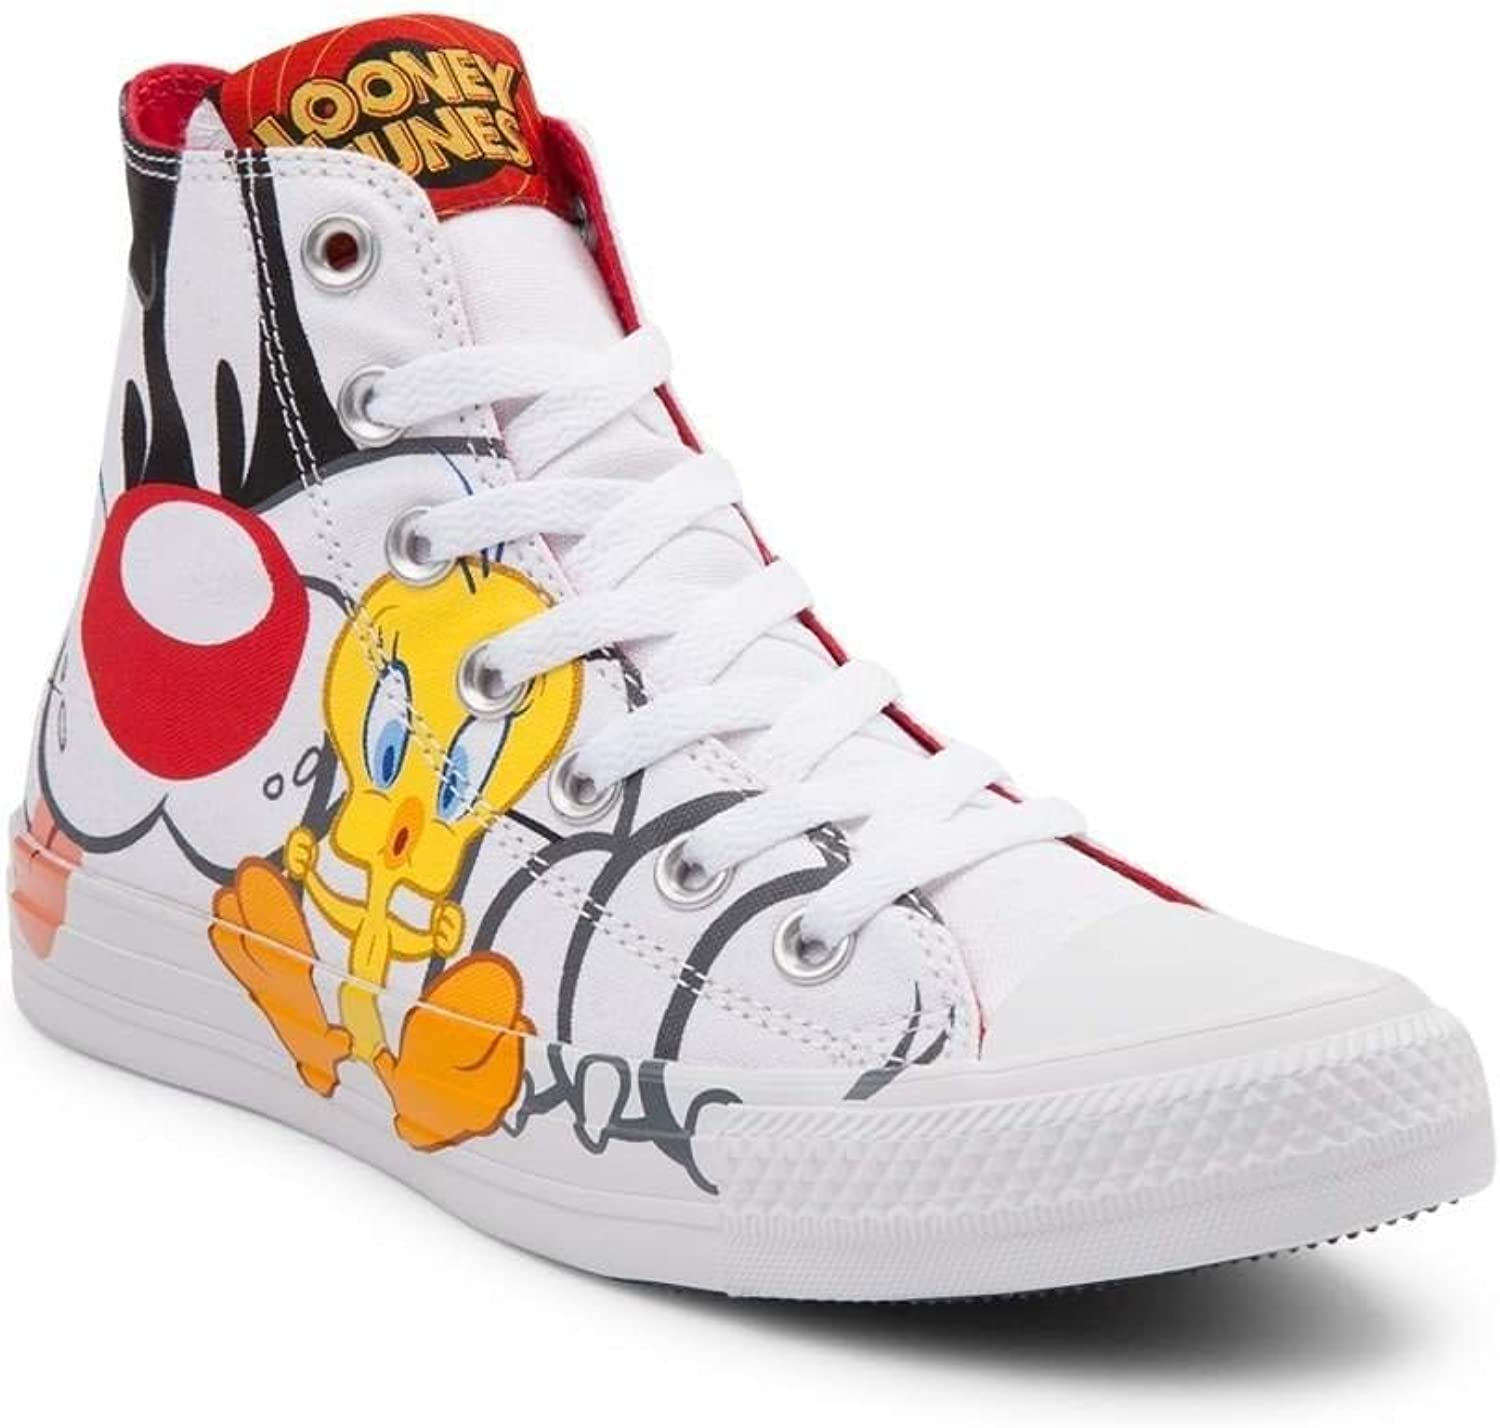 Converse Converse Chuck Taylor All Star High Looney Tunes Rivalry Collection Weiß schwarz Tweety Gelb 158886C Limited Edition  bester Service